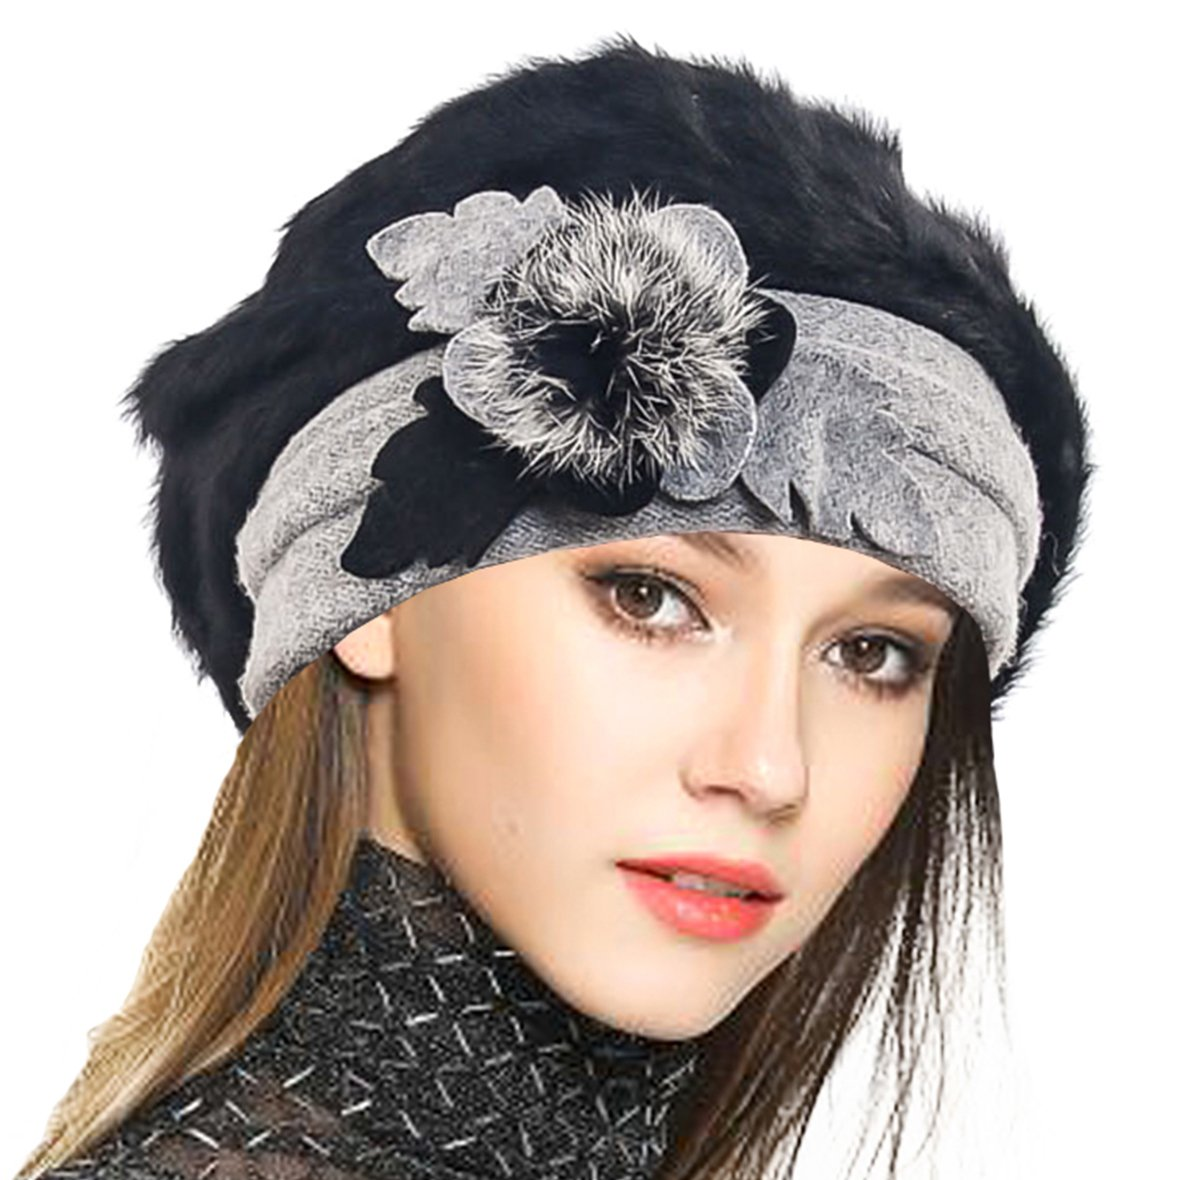 VECRY Lady French Beret 100% Wool Beret Floral Dress Beanie Winter Hat (Angola-Black)